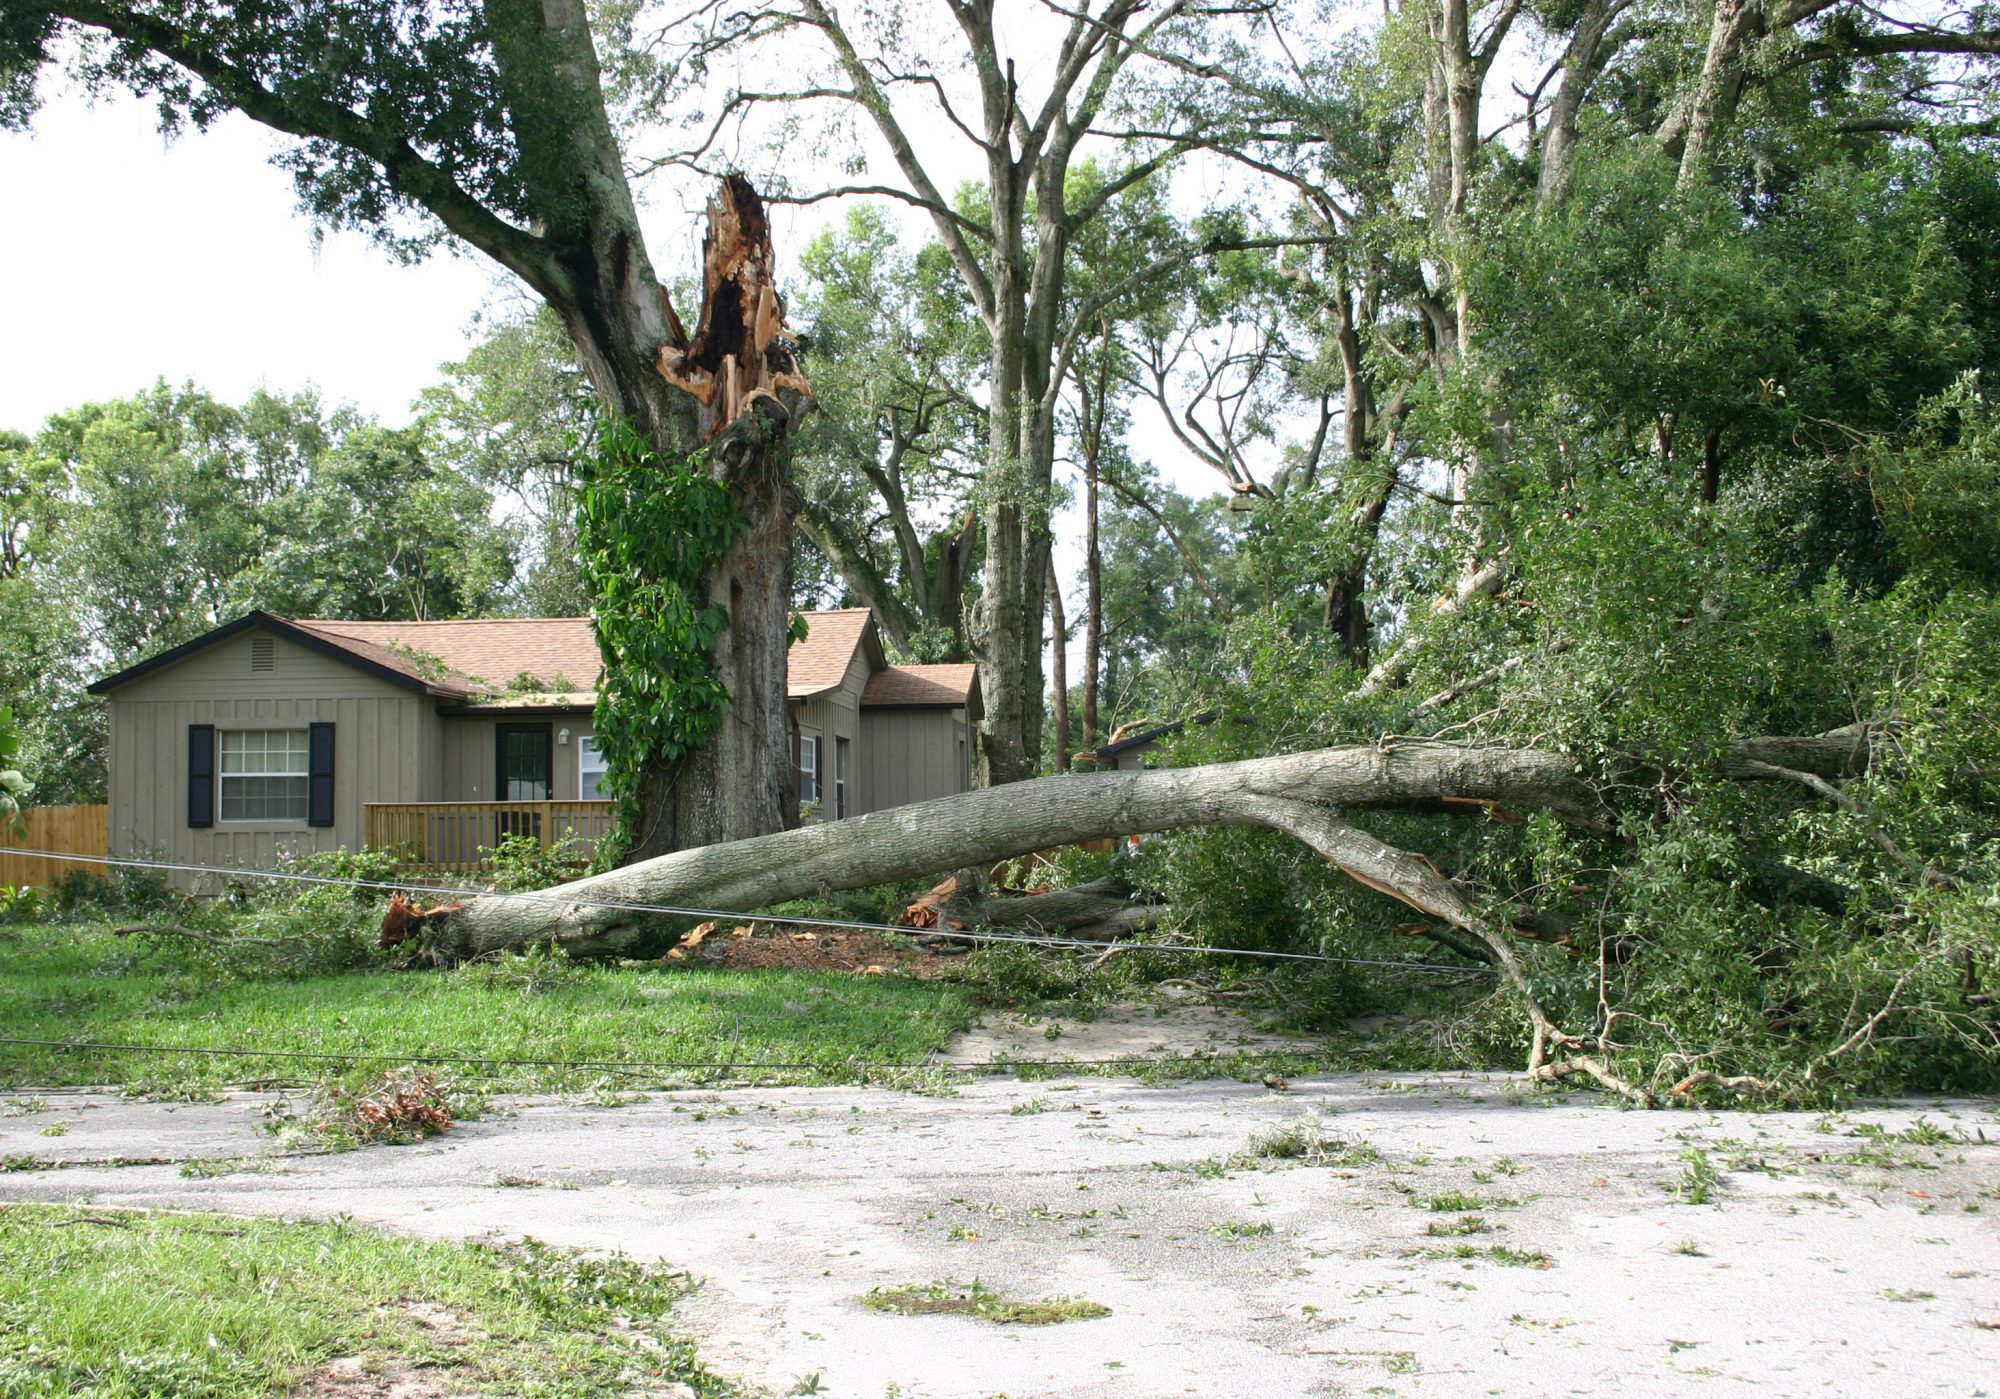 Before Hurricane Ivan hit Alabama and northwest Florida, Category 4 Hurricane Charley struck southwest Florida, just west of Ft. Myers, on August 13, 2004. Charley was the first of four hurricanes to affect Florida in August and September of that year, and the second-most damaging, after Ivan. Cost: $15 billion